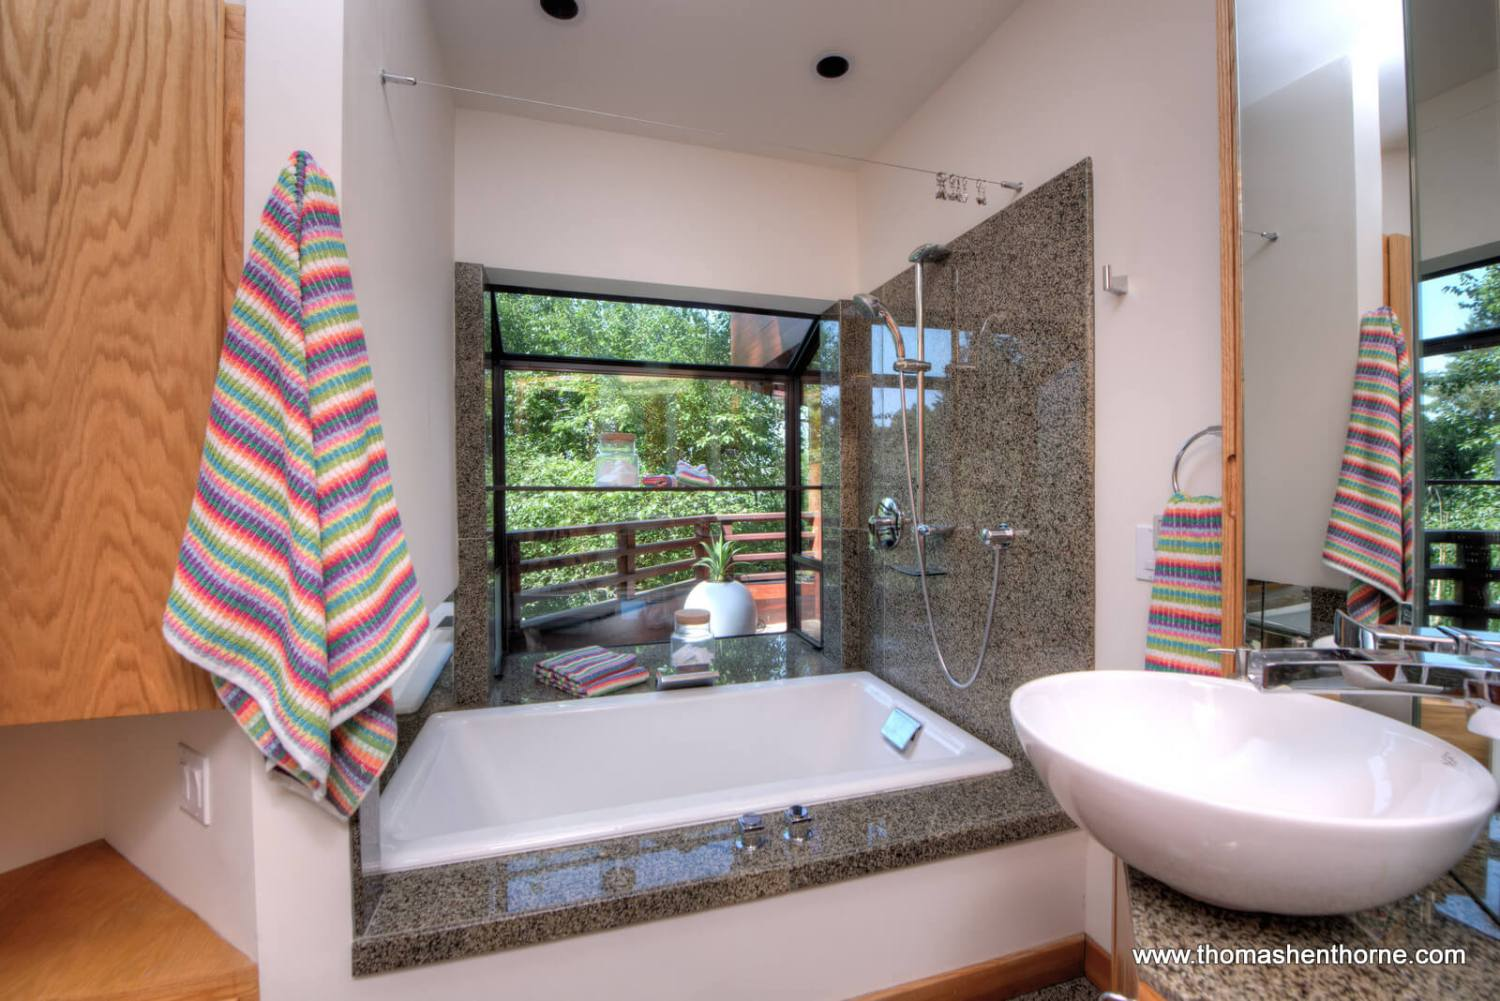 bathroom with vessel sink